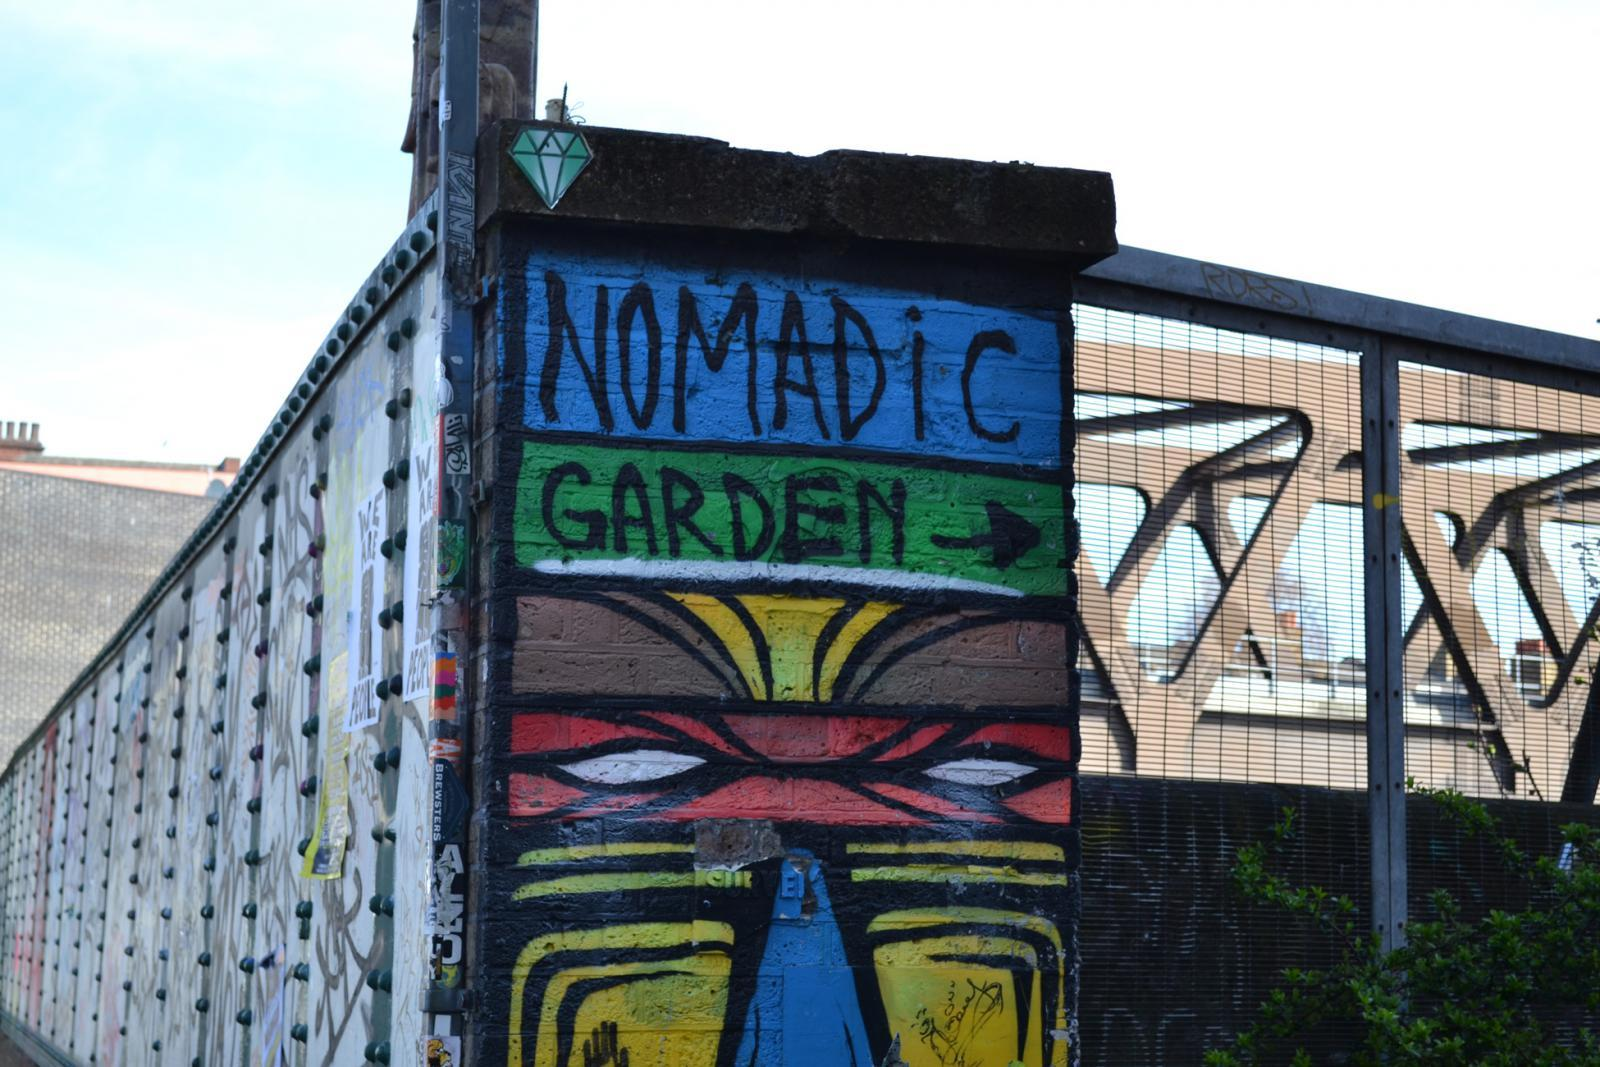 Nomadic Garden in der Brick Lane